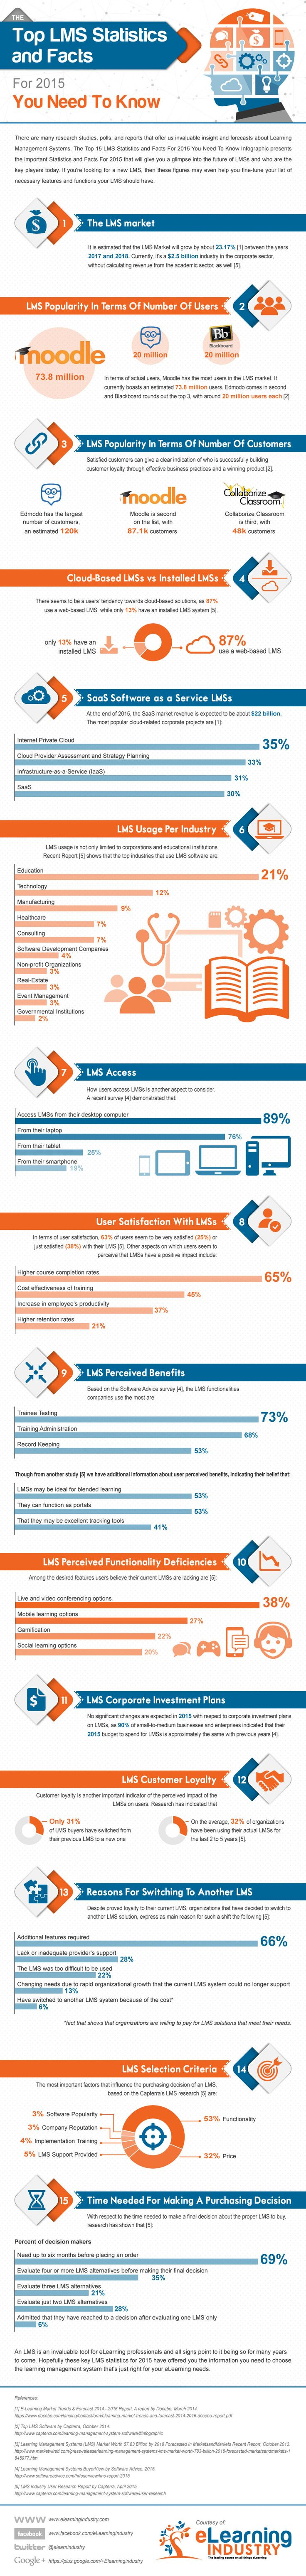 Top LMS Stats and Facts For 2015 Infographic You Need To Know - http://elearninginfographics.com/top-lms-stats-facts-2015-infographic-need-know/